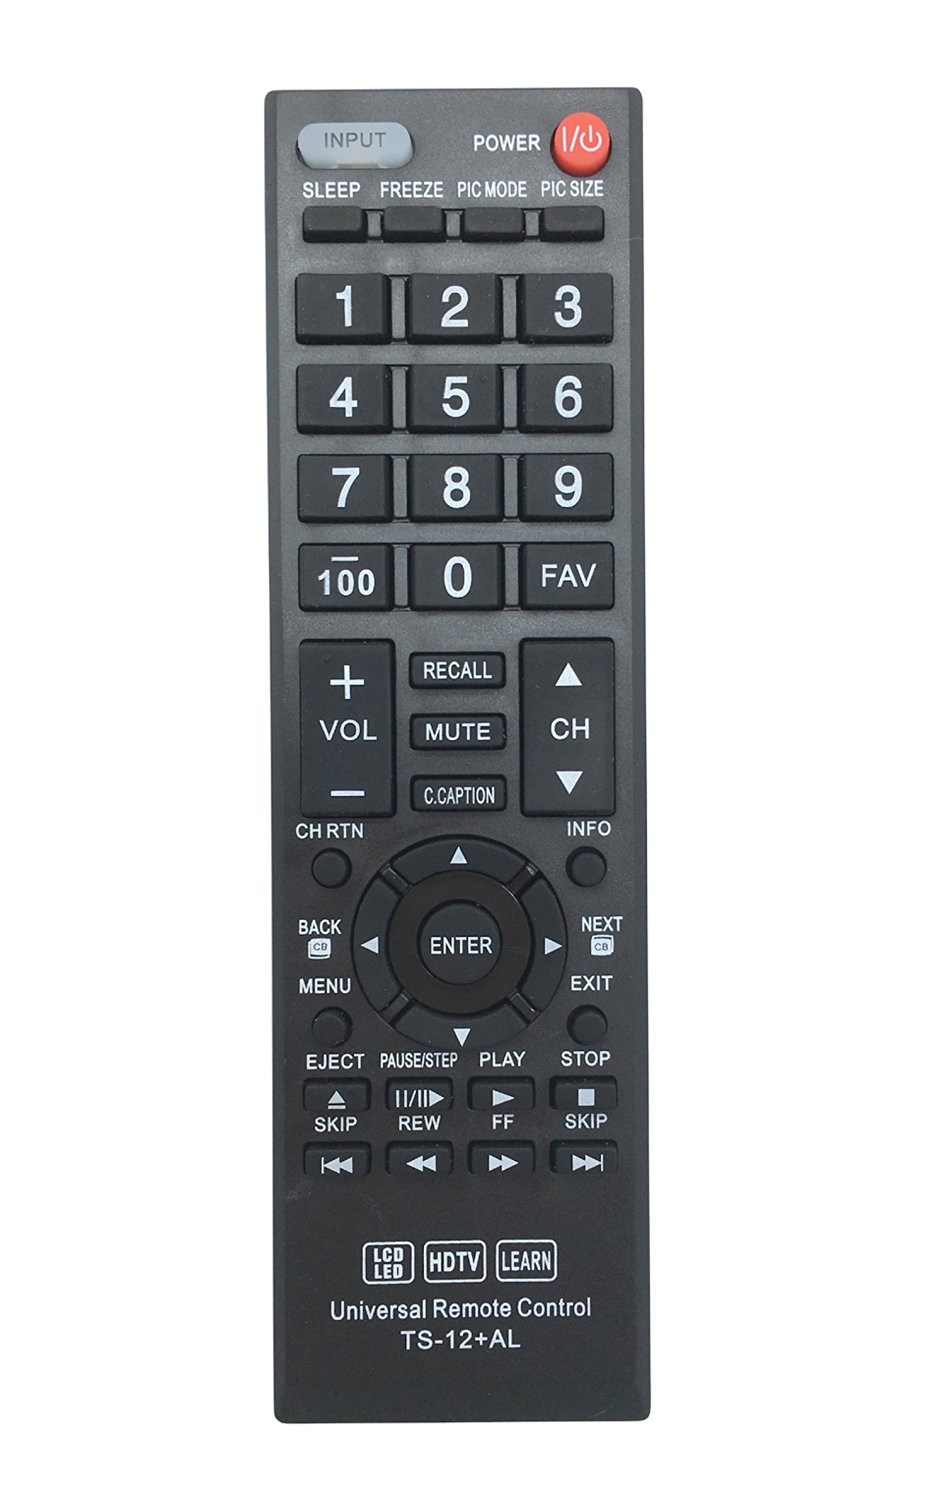 Vinabty New Replaced Universal Remote Control TS-12+AL fits for TOSHIBA Series CT-90325 LCD LED HDTV LEARN TV REMOTE